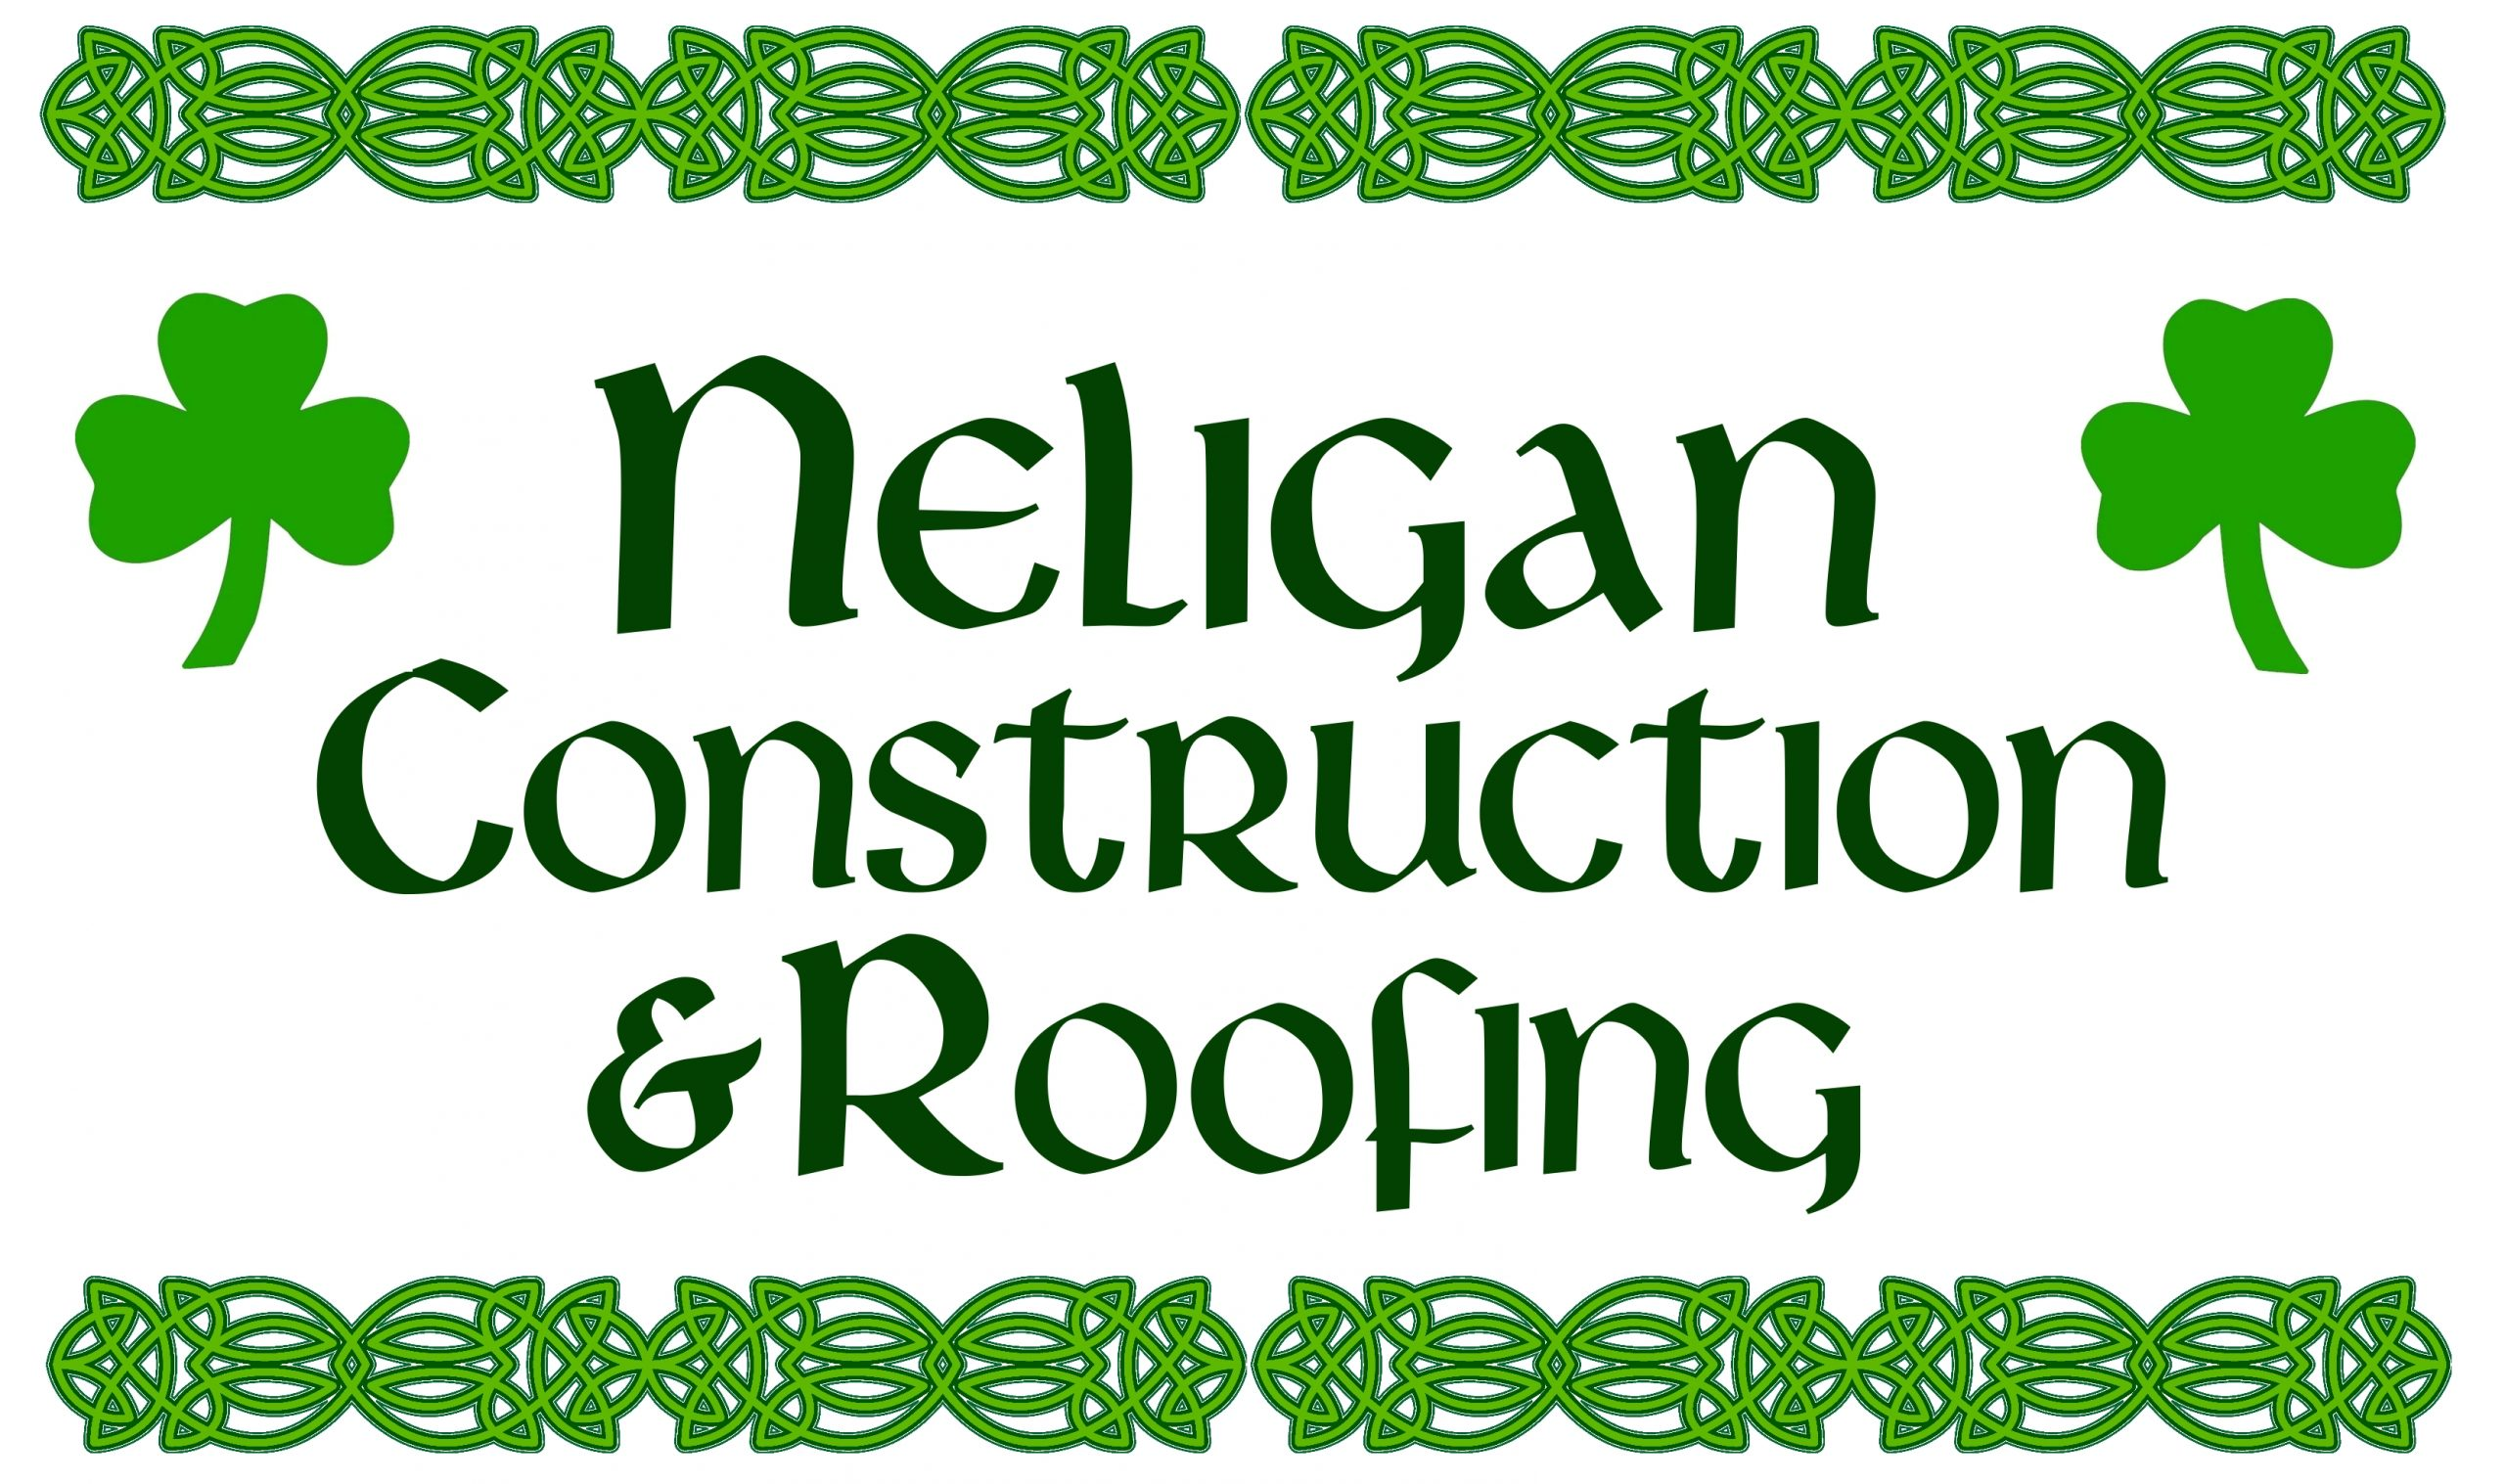 Neligan Construction & Roofing, LLC is a Premier Roofing Contractor in Jacksonville Beach